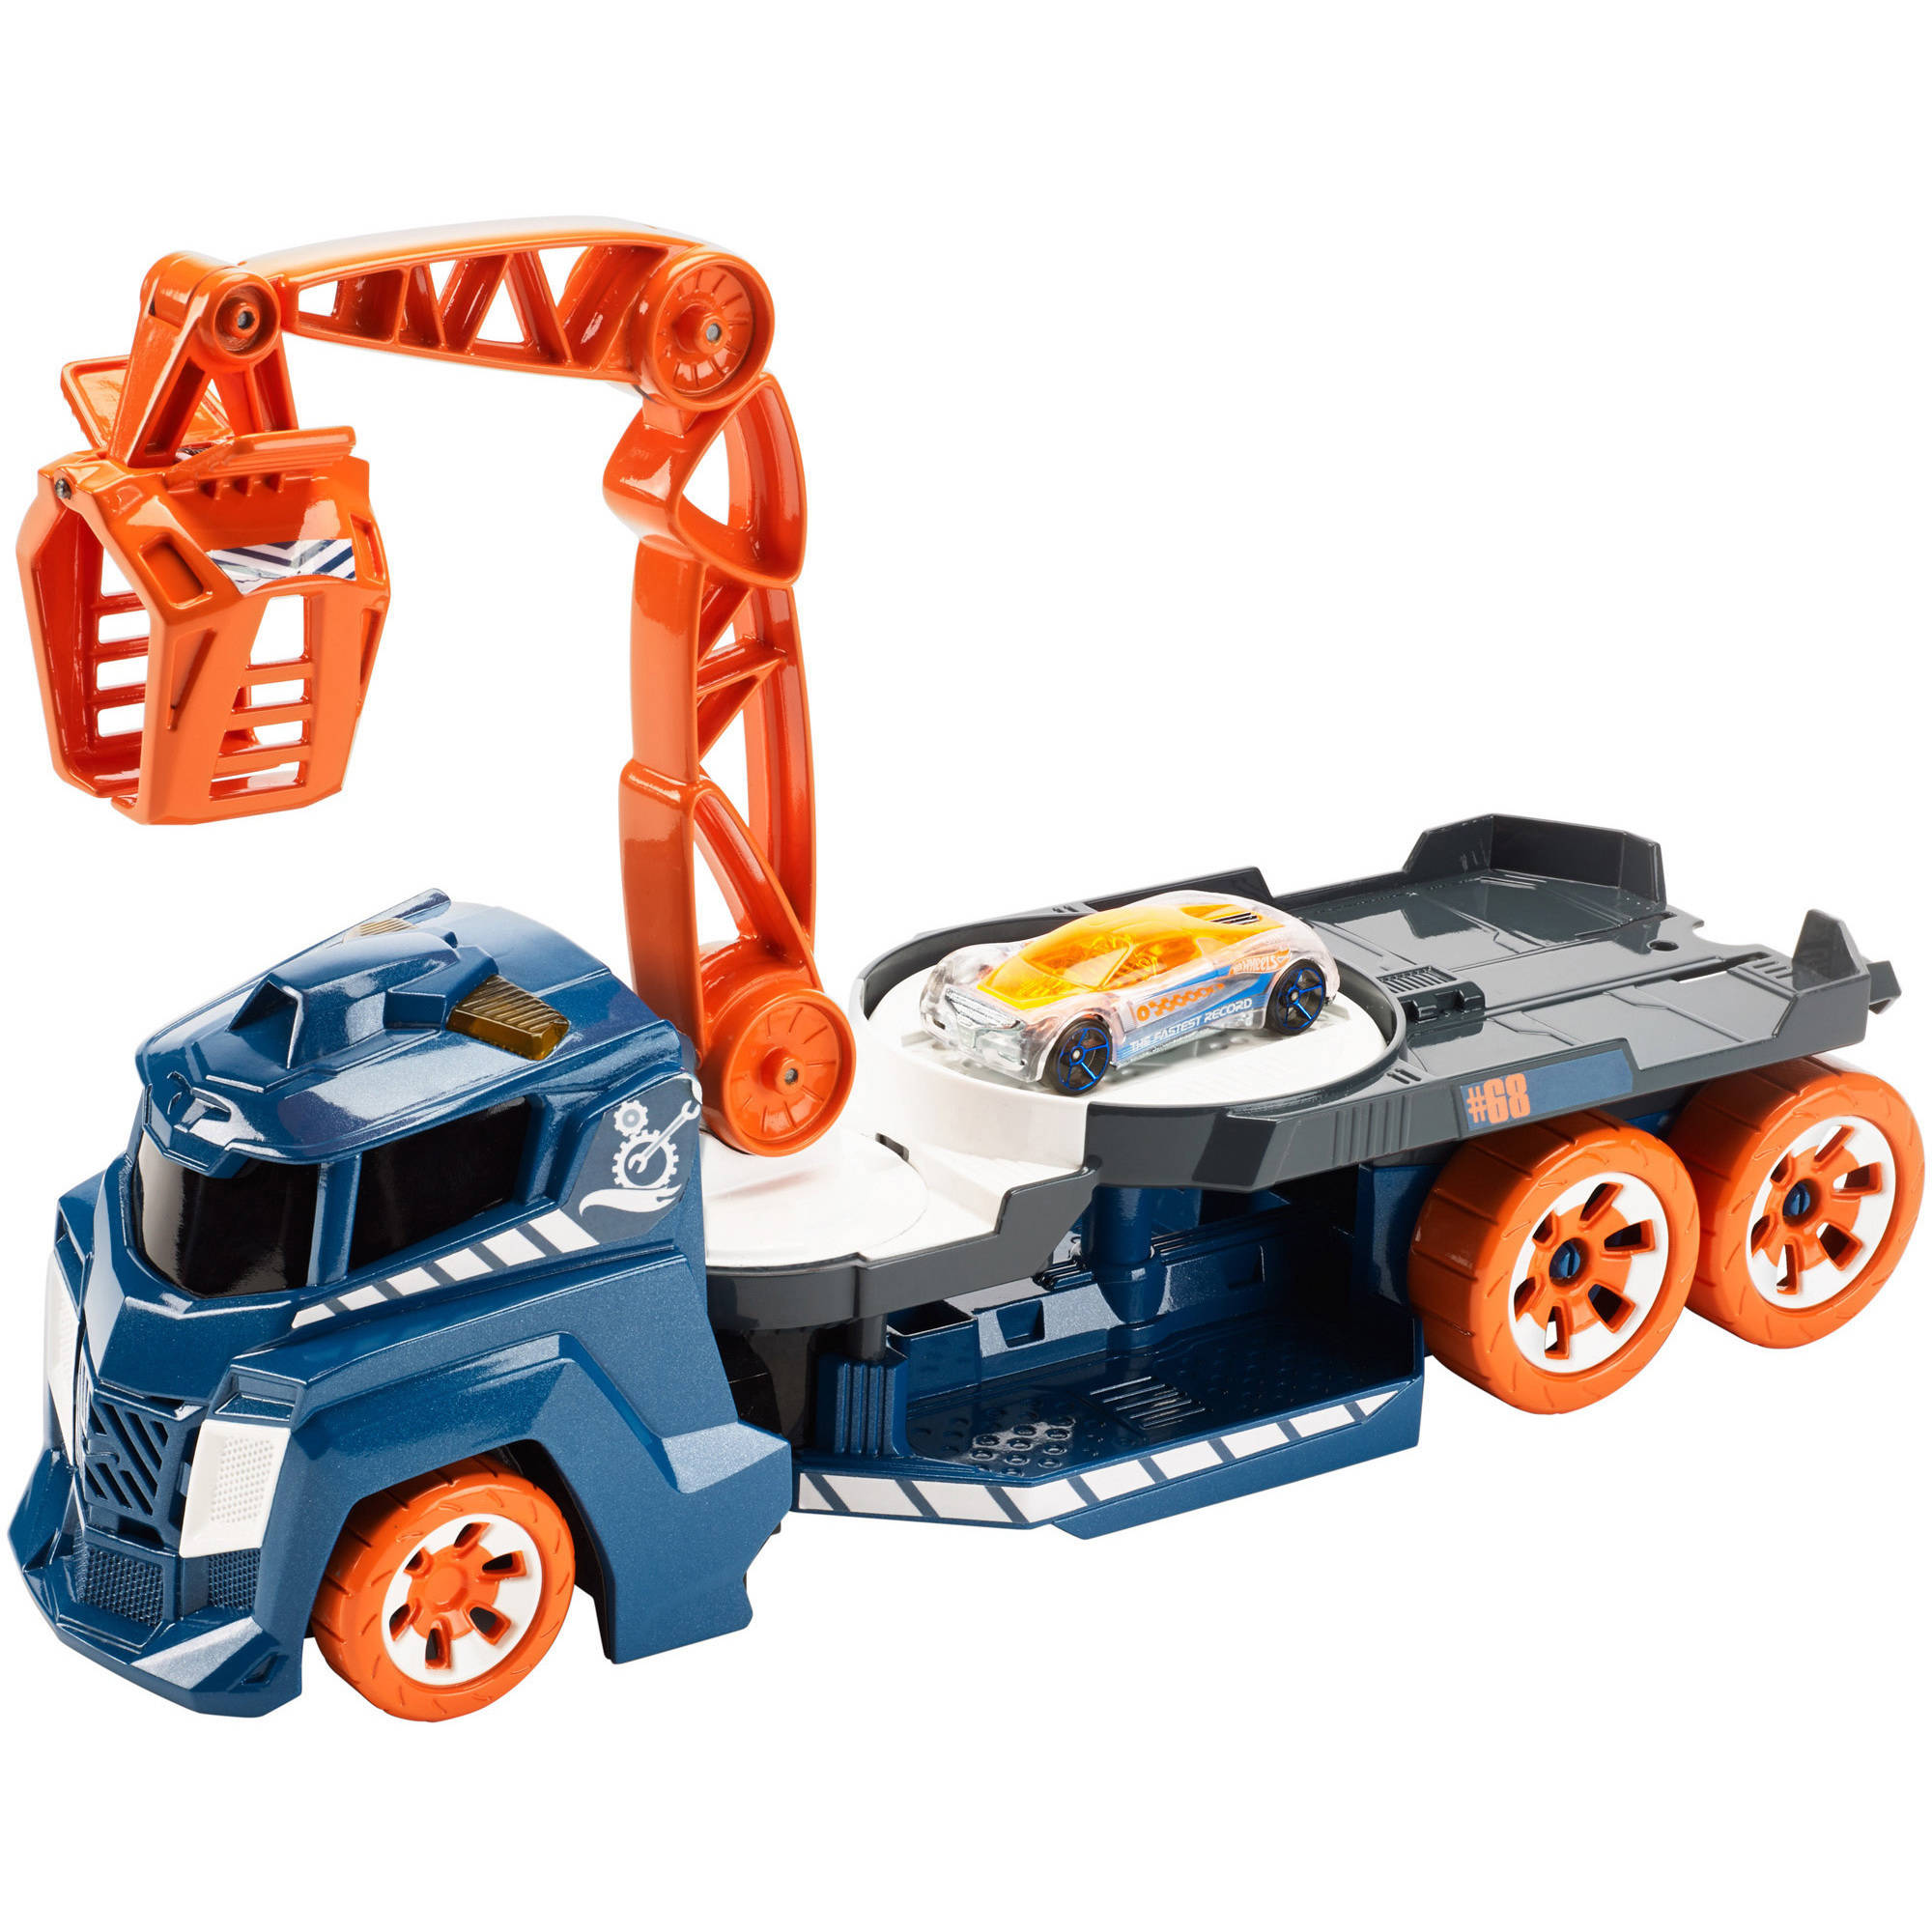 Hot Wheels Spinnin' Sound Crane Vehicle